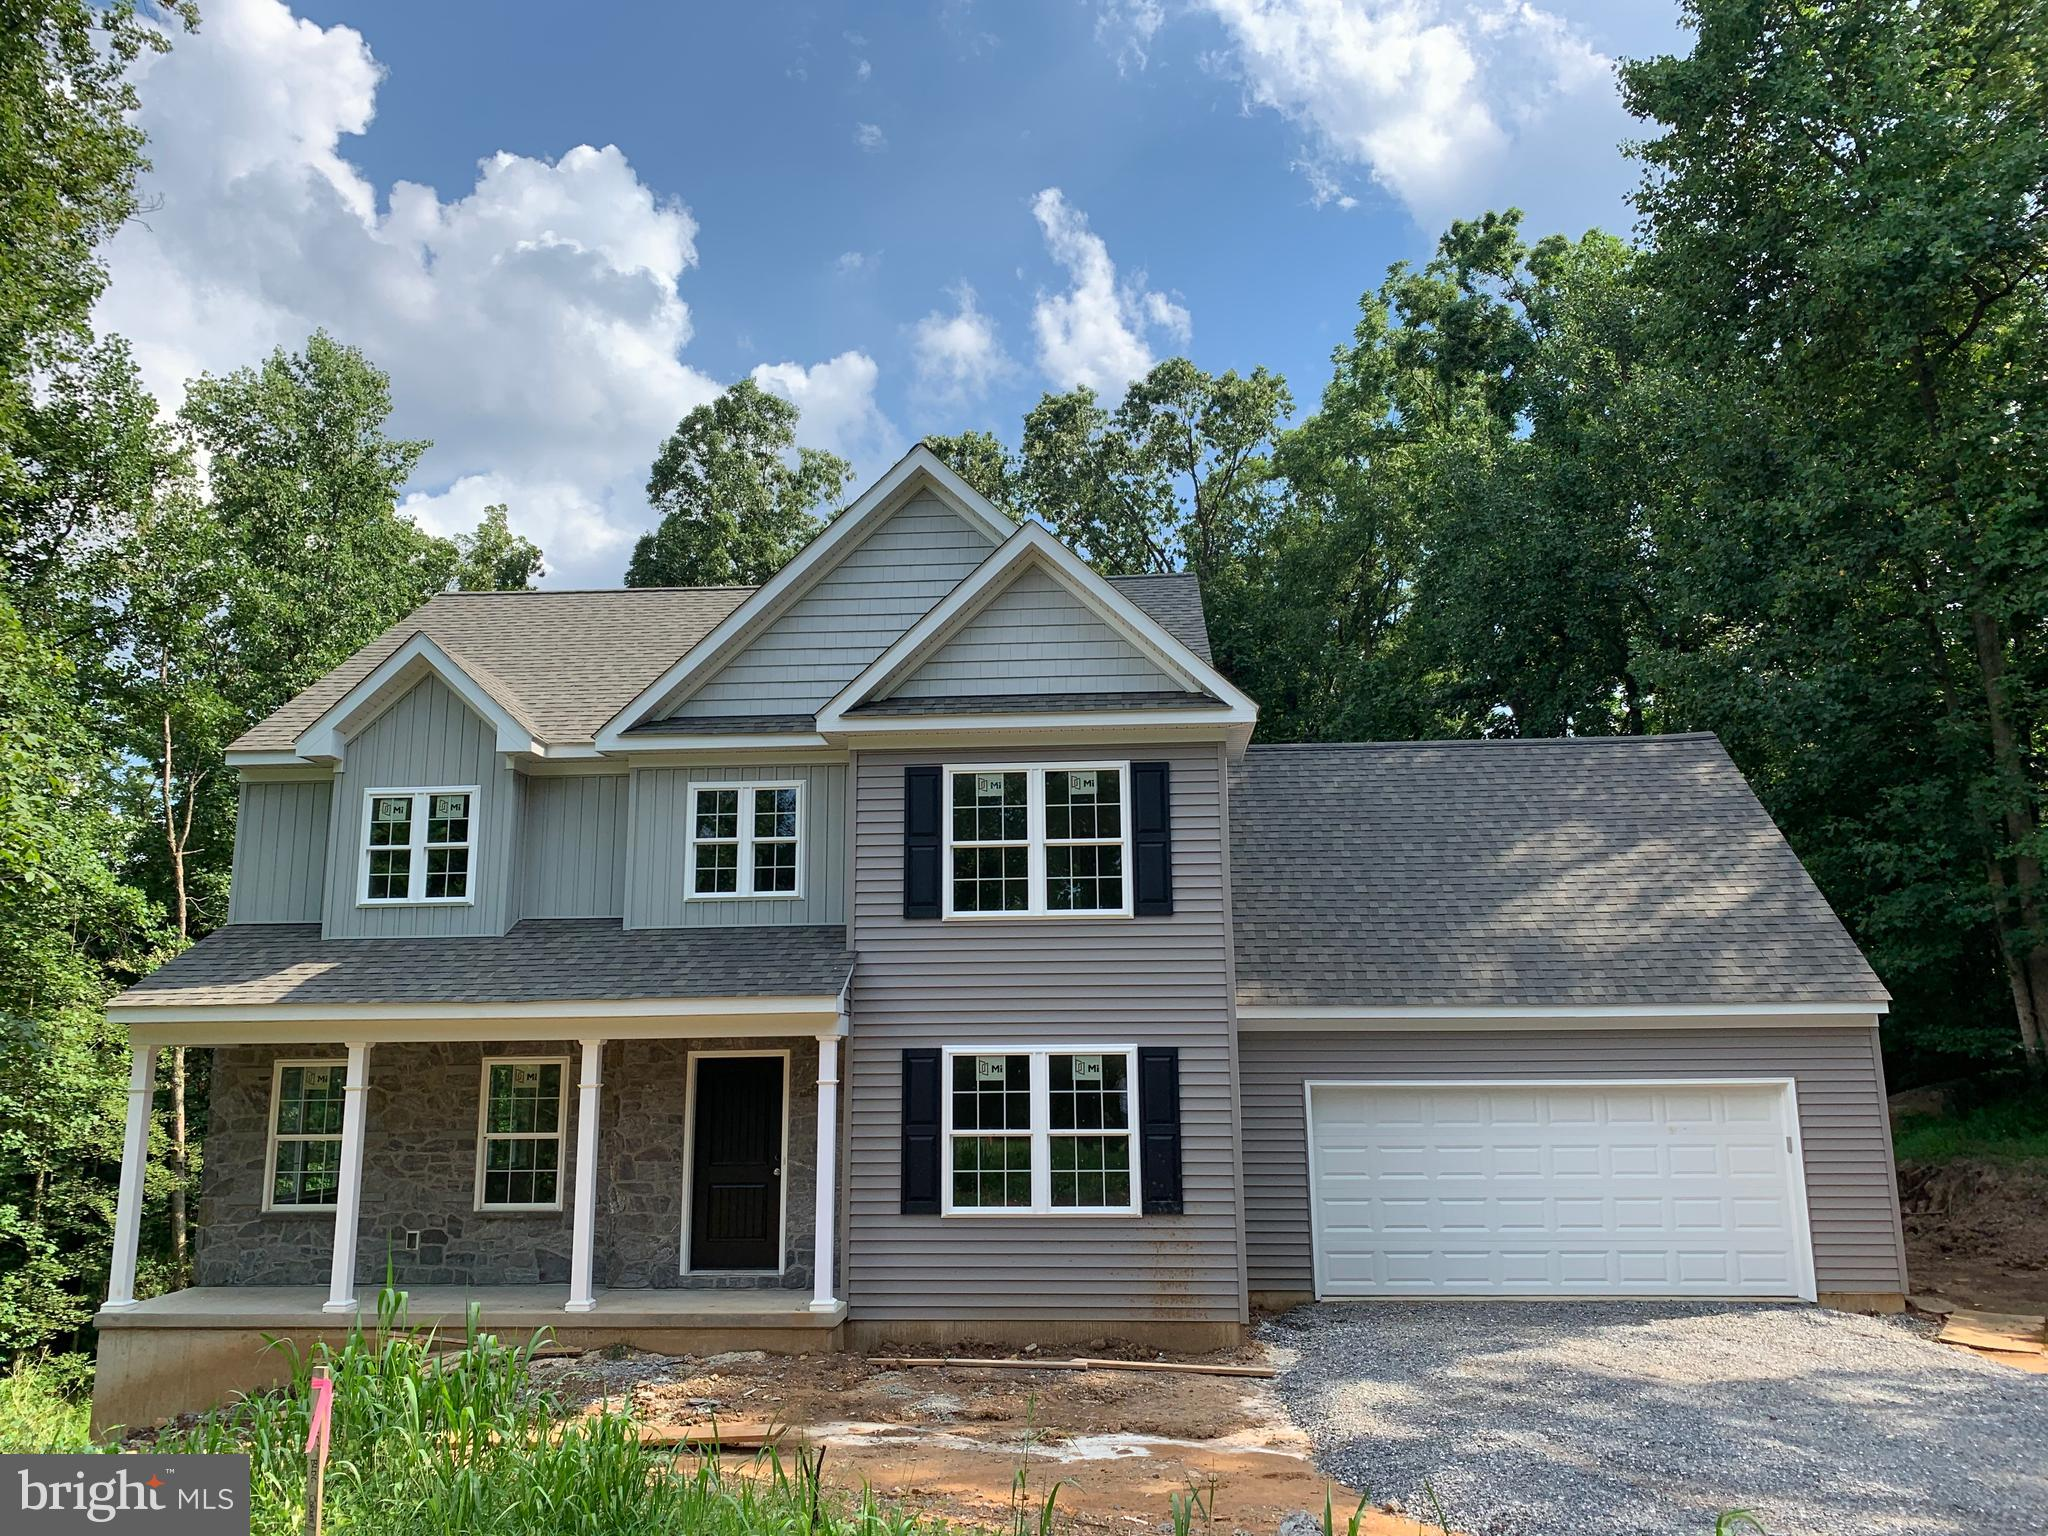 818 LOCUST GROVE ROAD, MIDDLETOWN, PA 17057